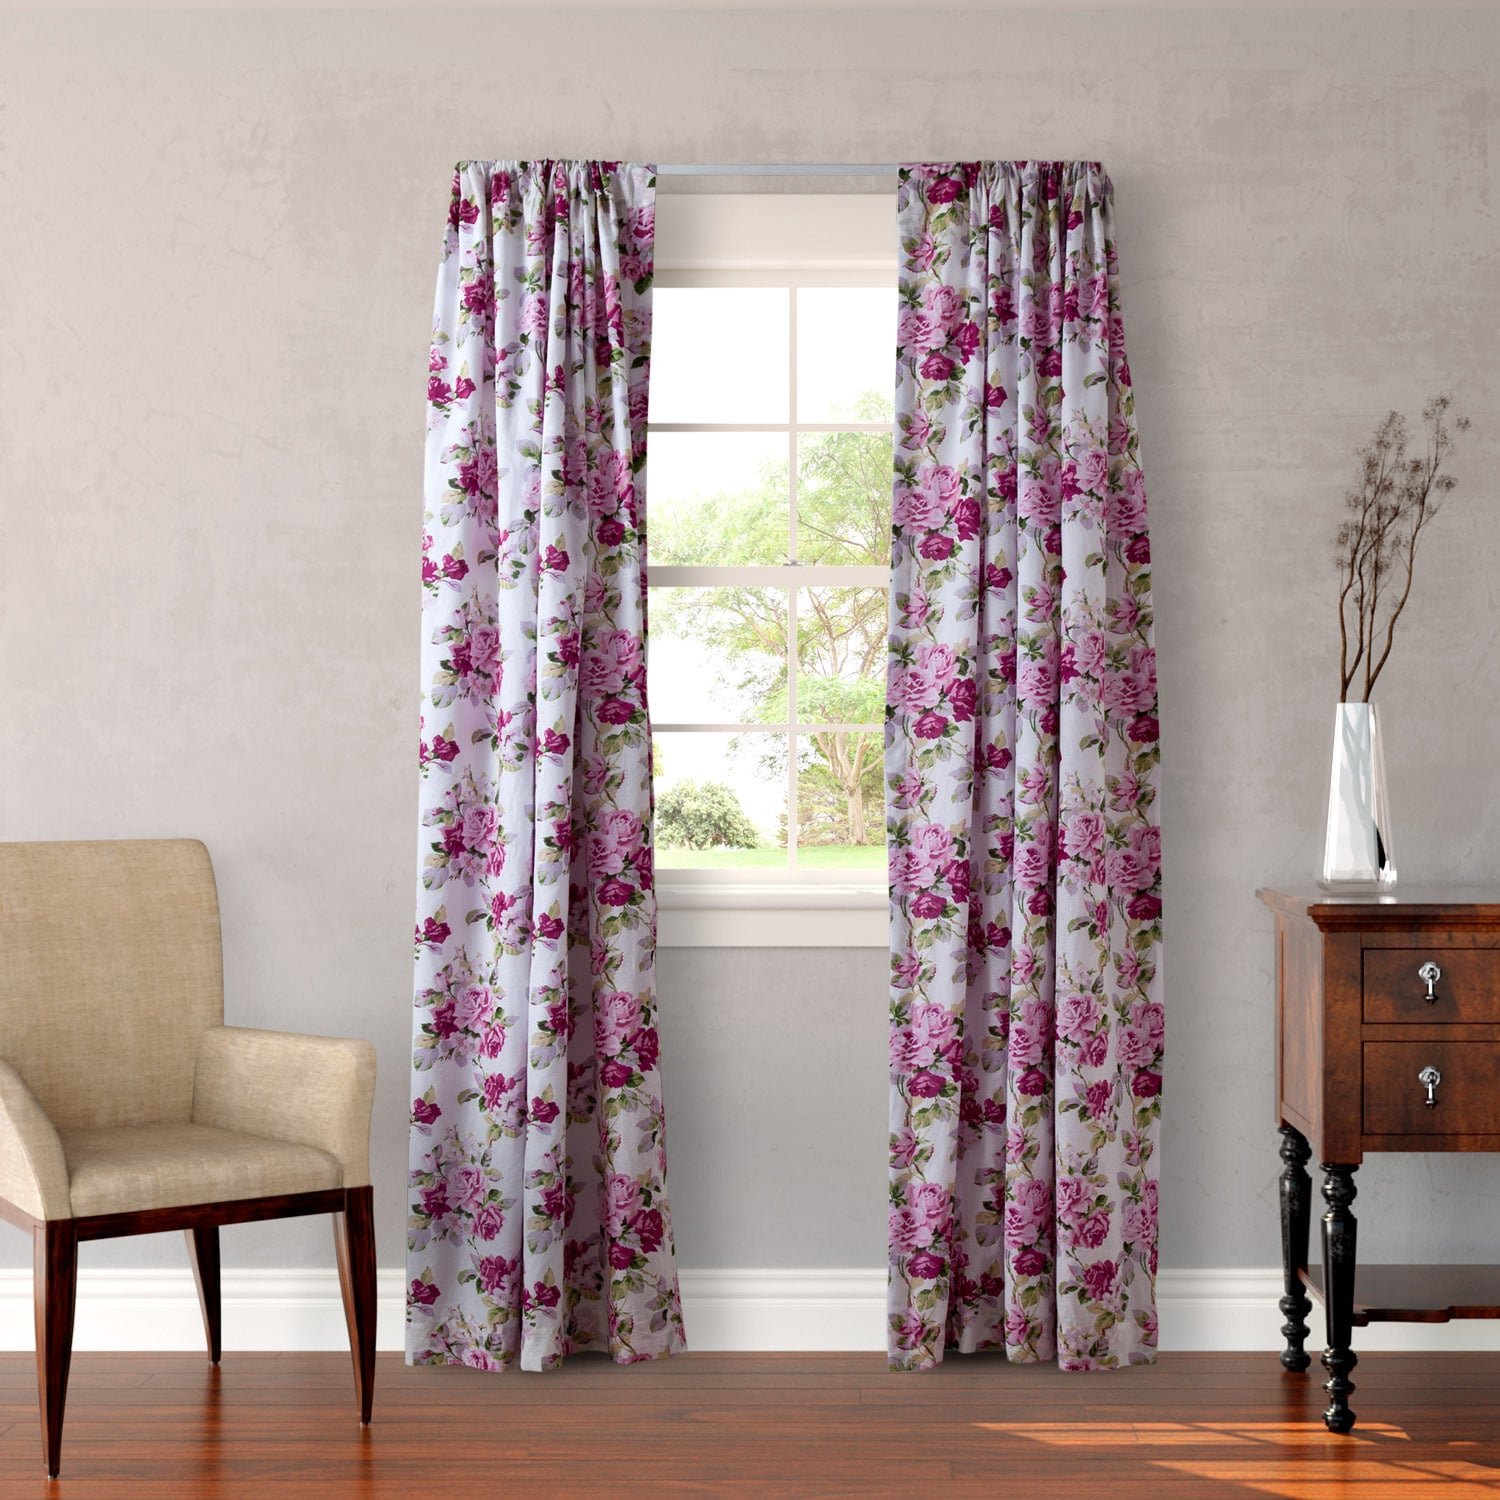 Laura Ashley Lidia 4-piece Lined Curtain Panel Set (Windo...